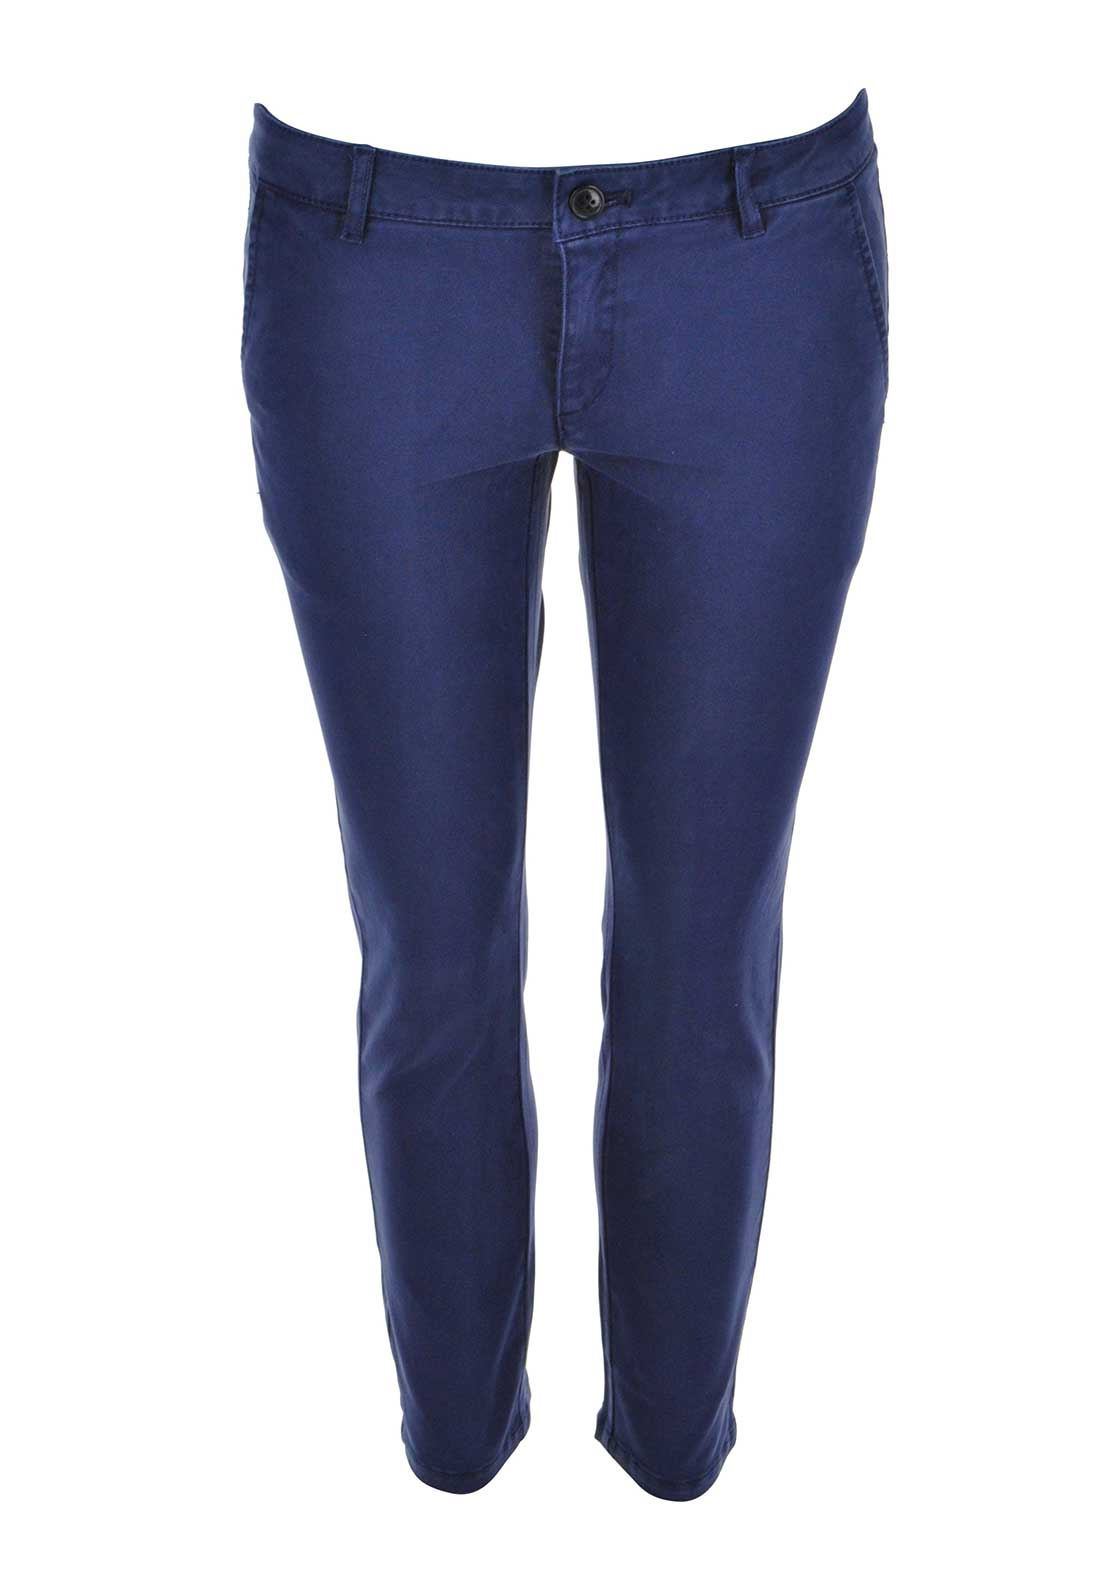 Silvian Heach 7/8 Cotton Chinos, Navy